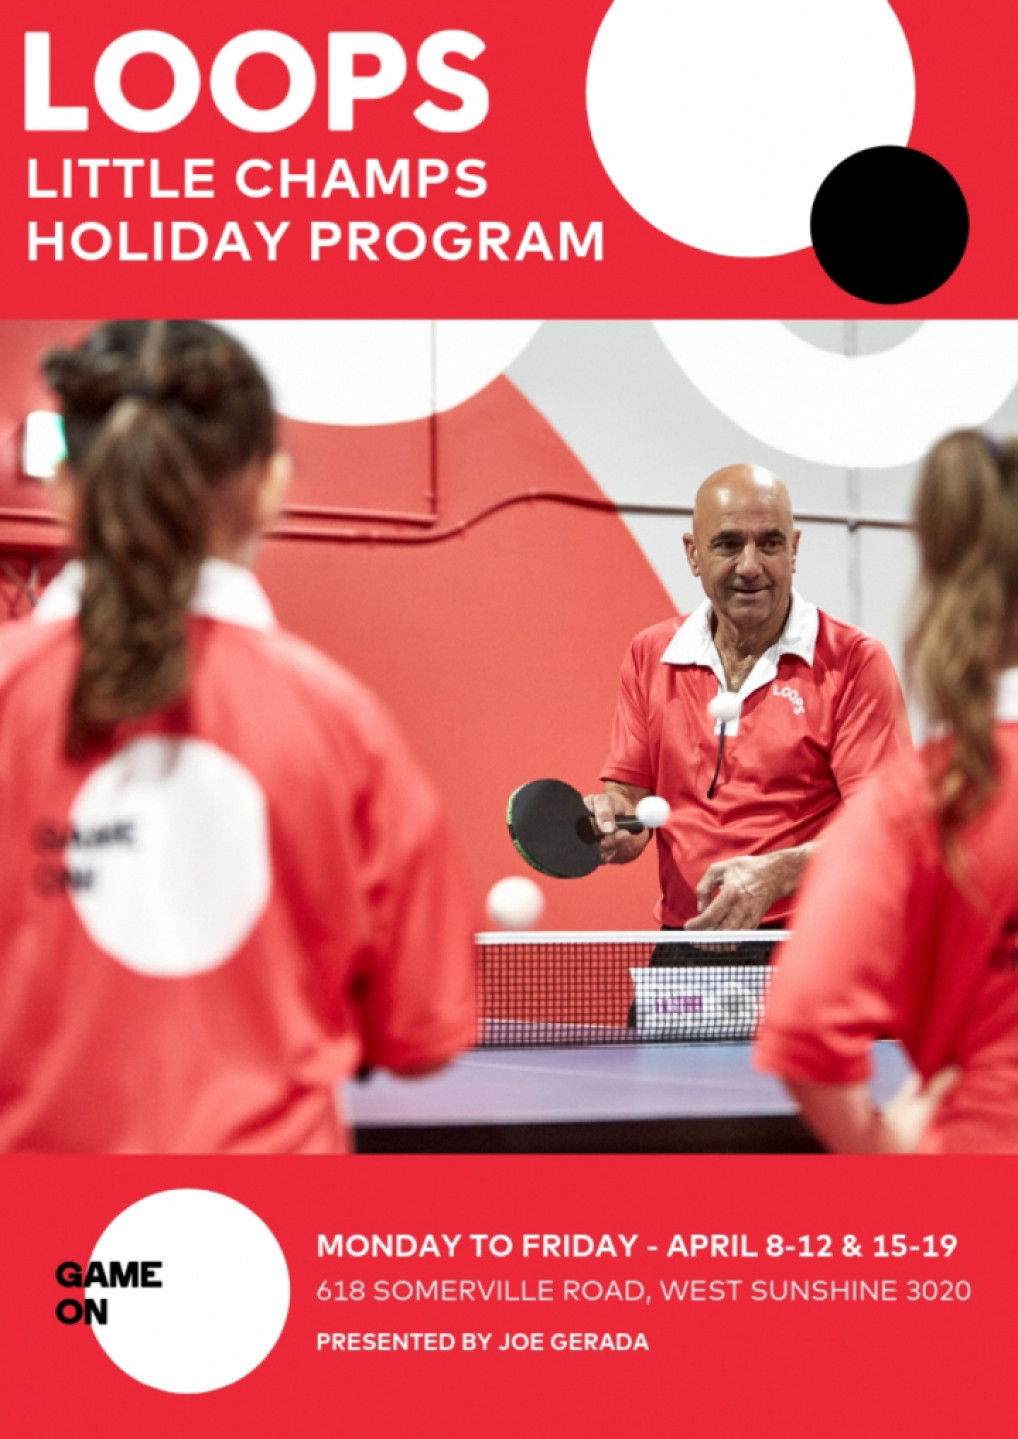 LITTLE CHAMPS HOLIDAY PROGRAMS